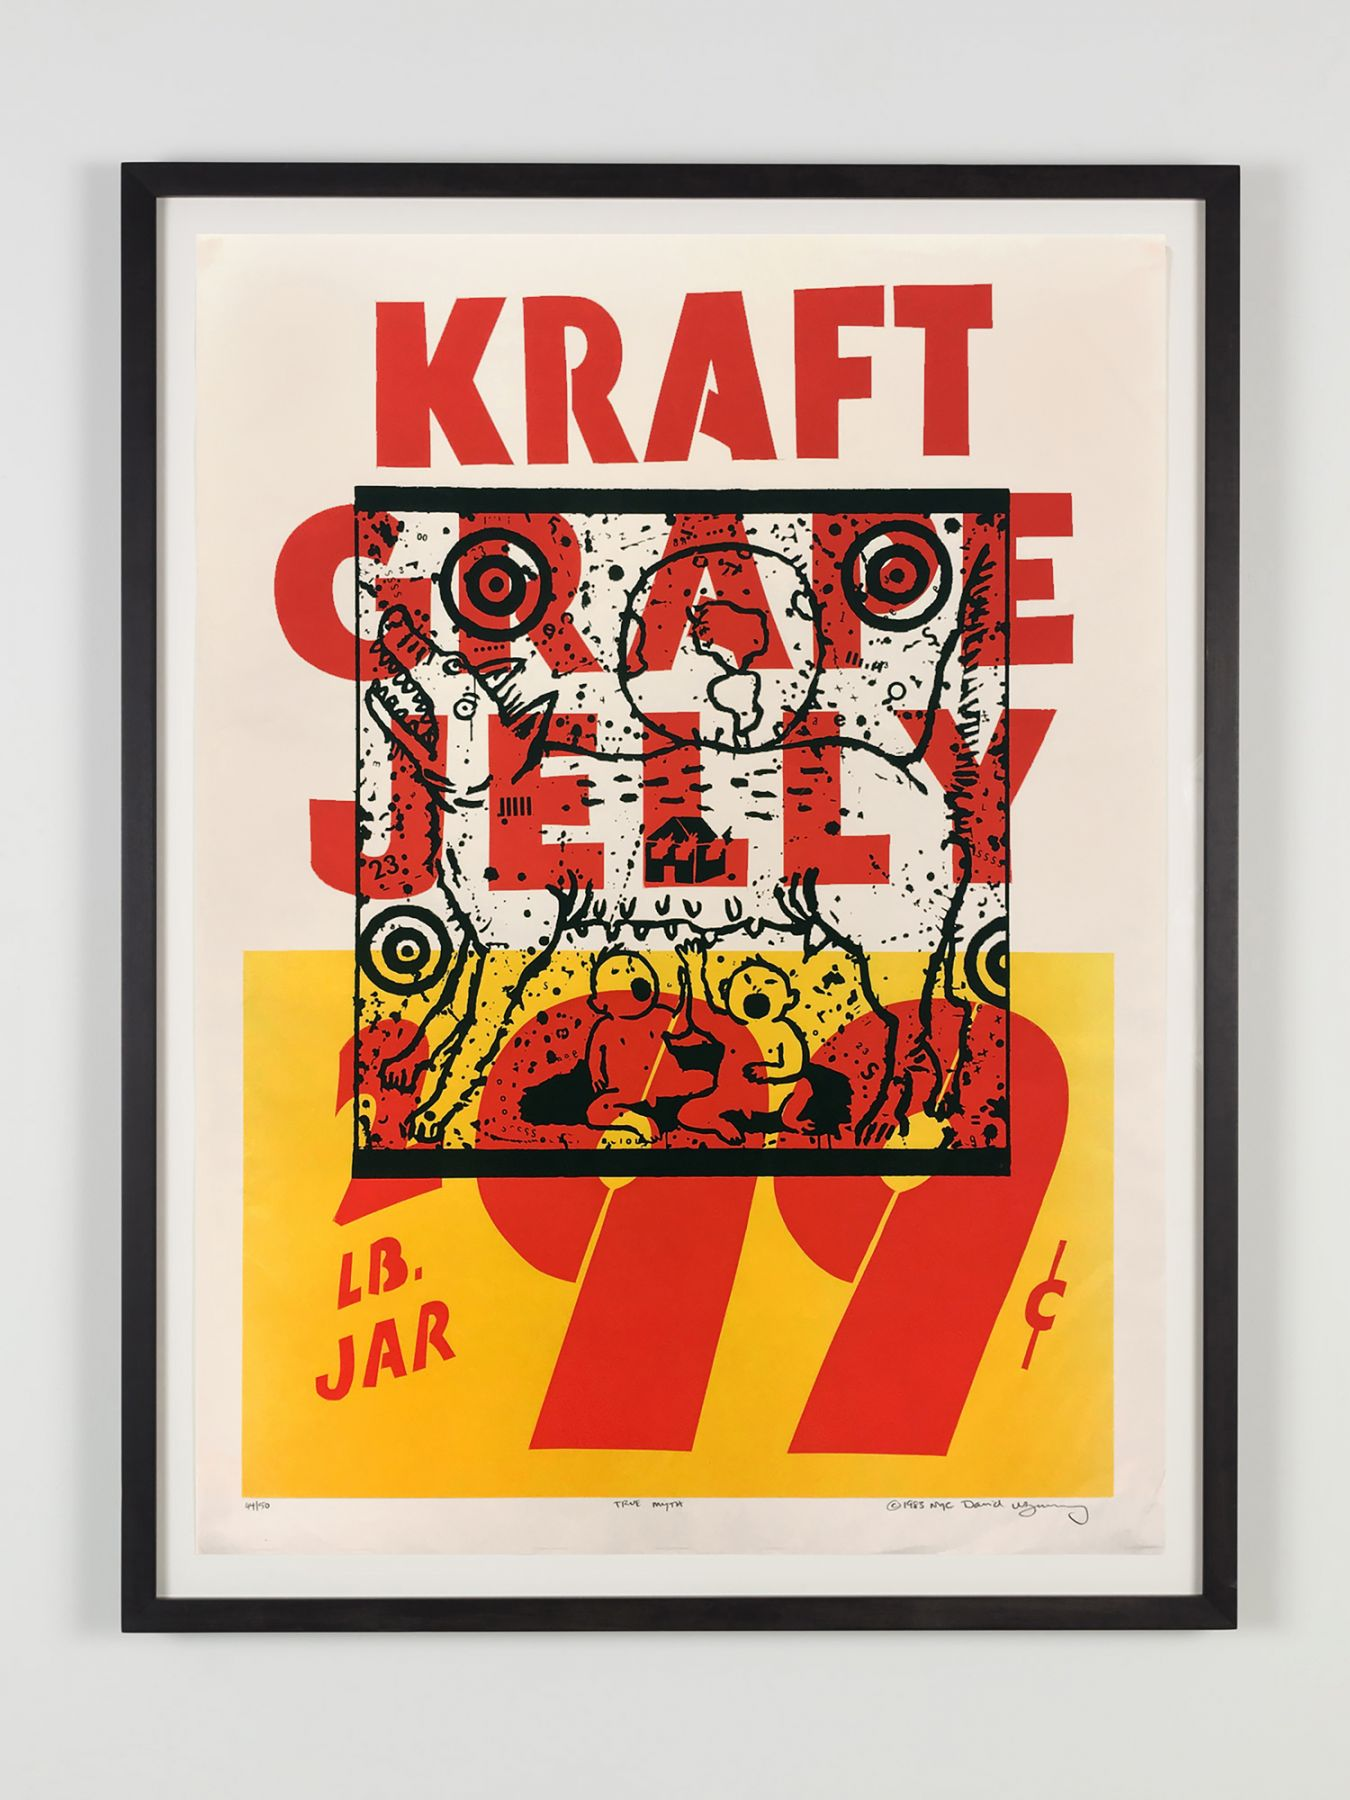 David Wojnarowicz, True Myth (Kraft Grape Jelly)